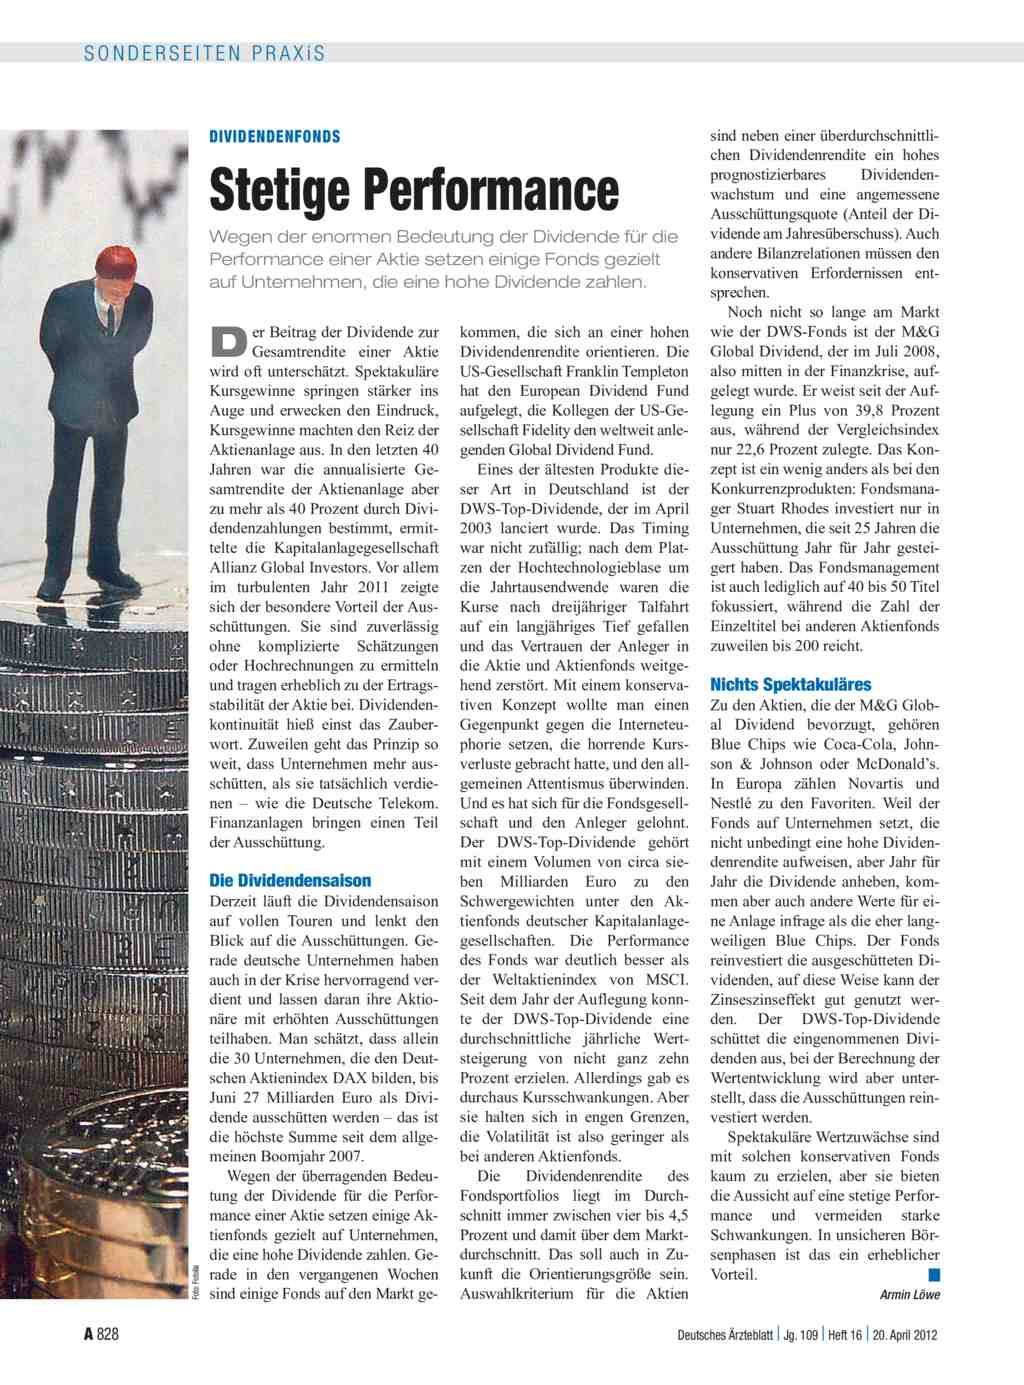 Dividendenfonds: Stetige Performance